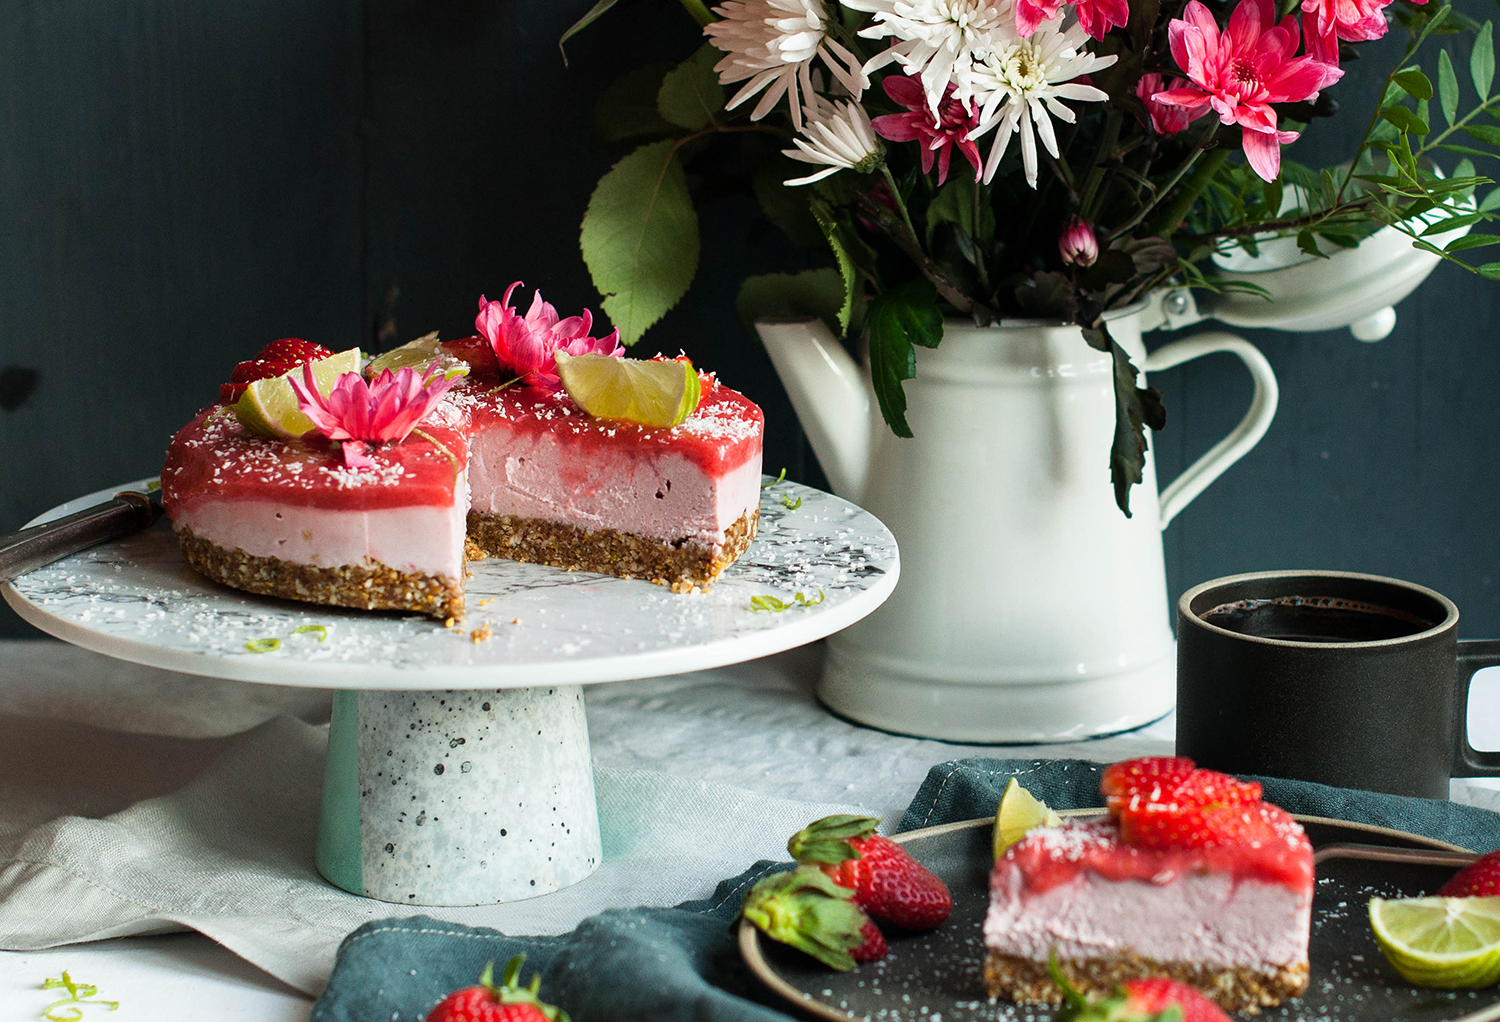 Glutenfree-raw-vegan-strawberry-lime-tart-lea-lou-6